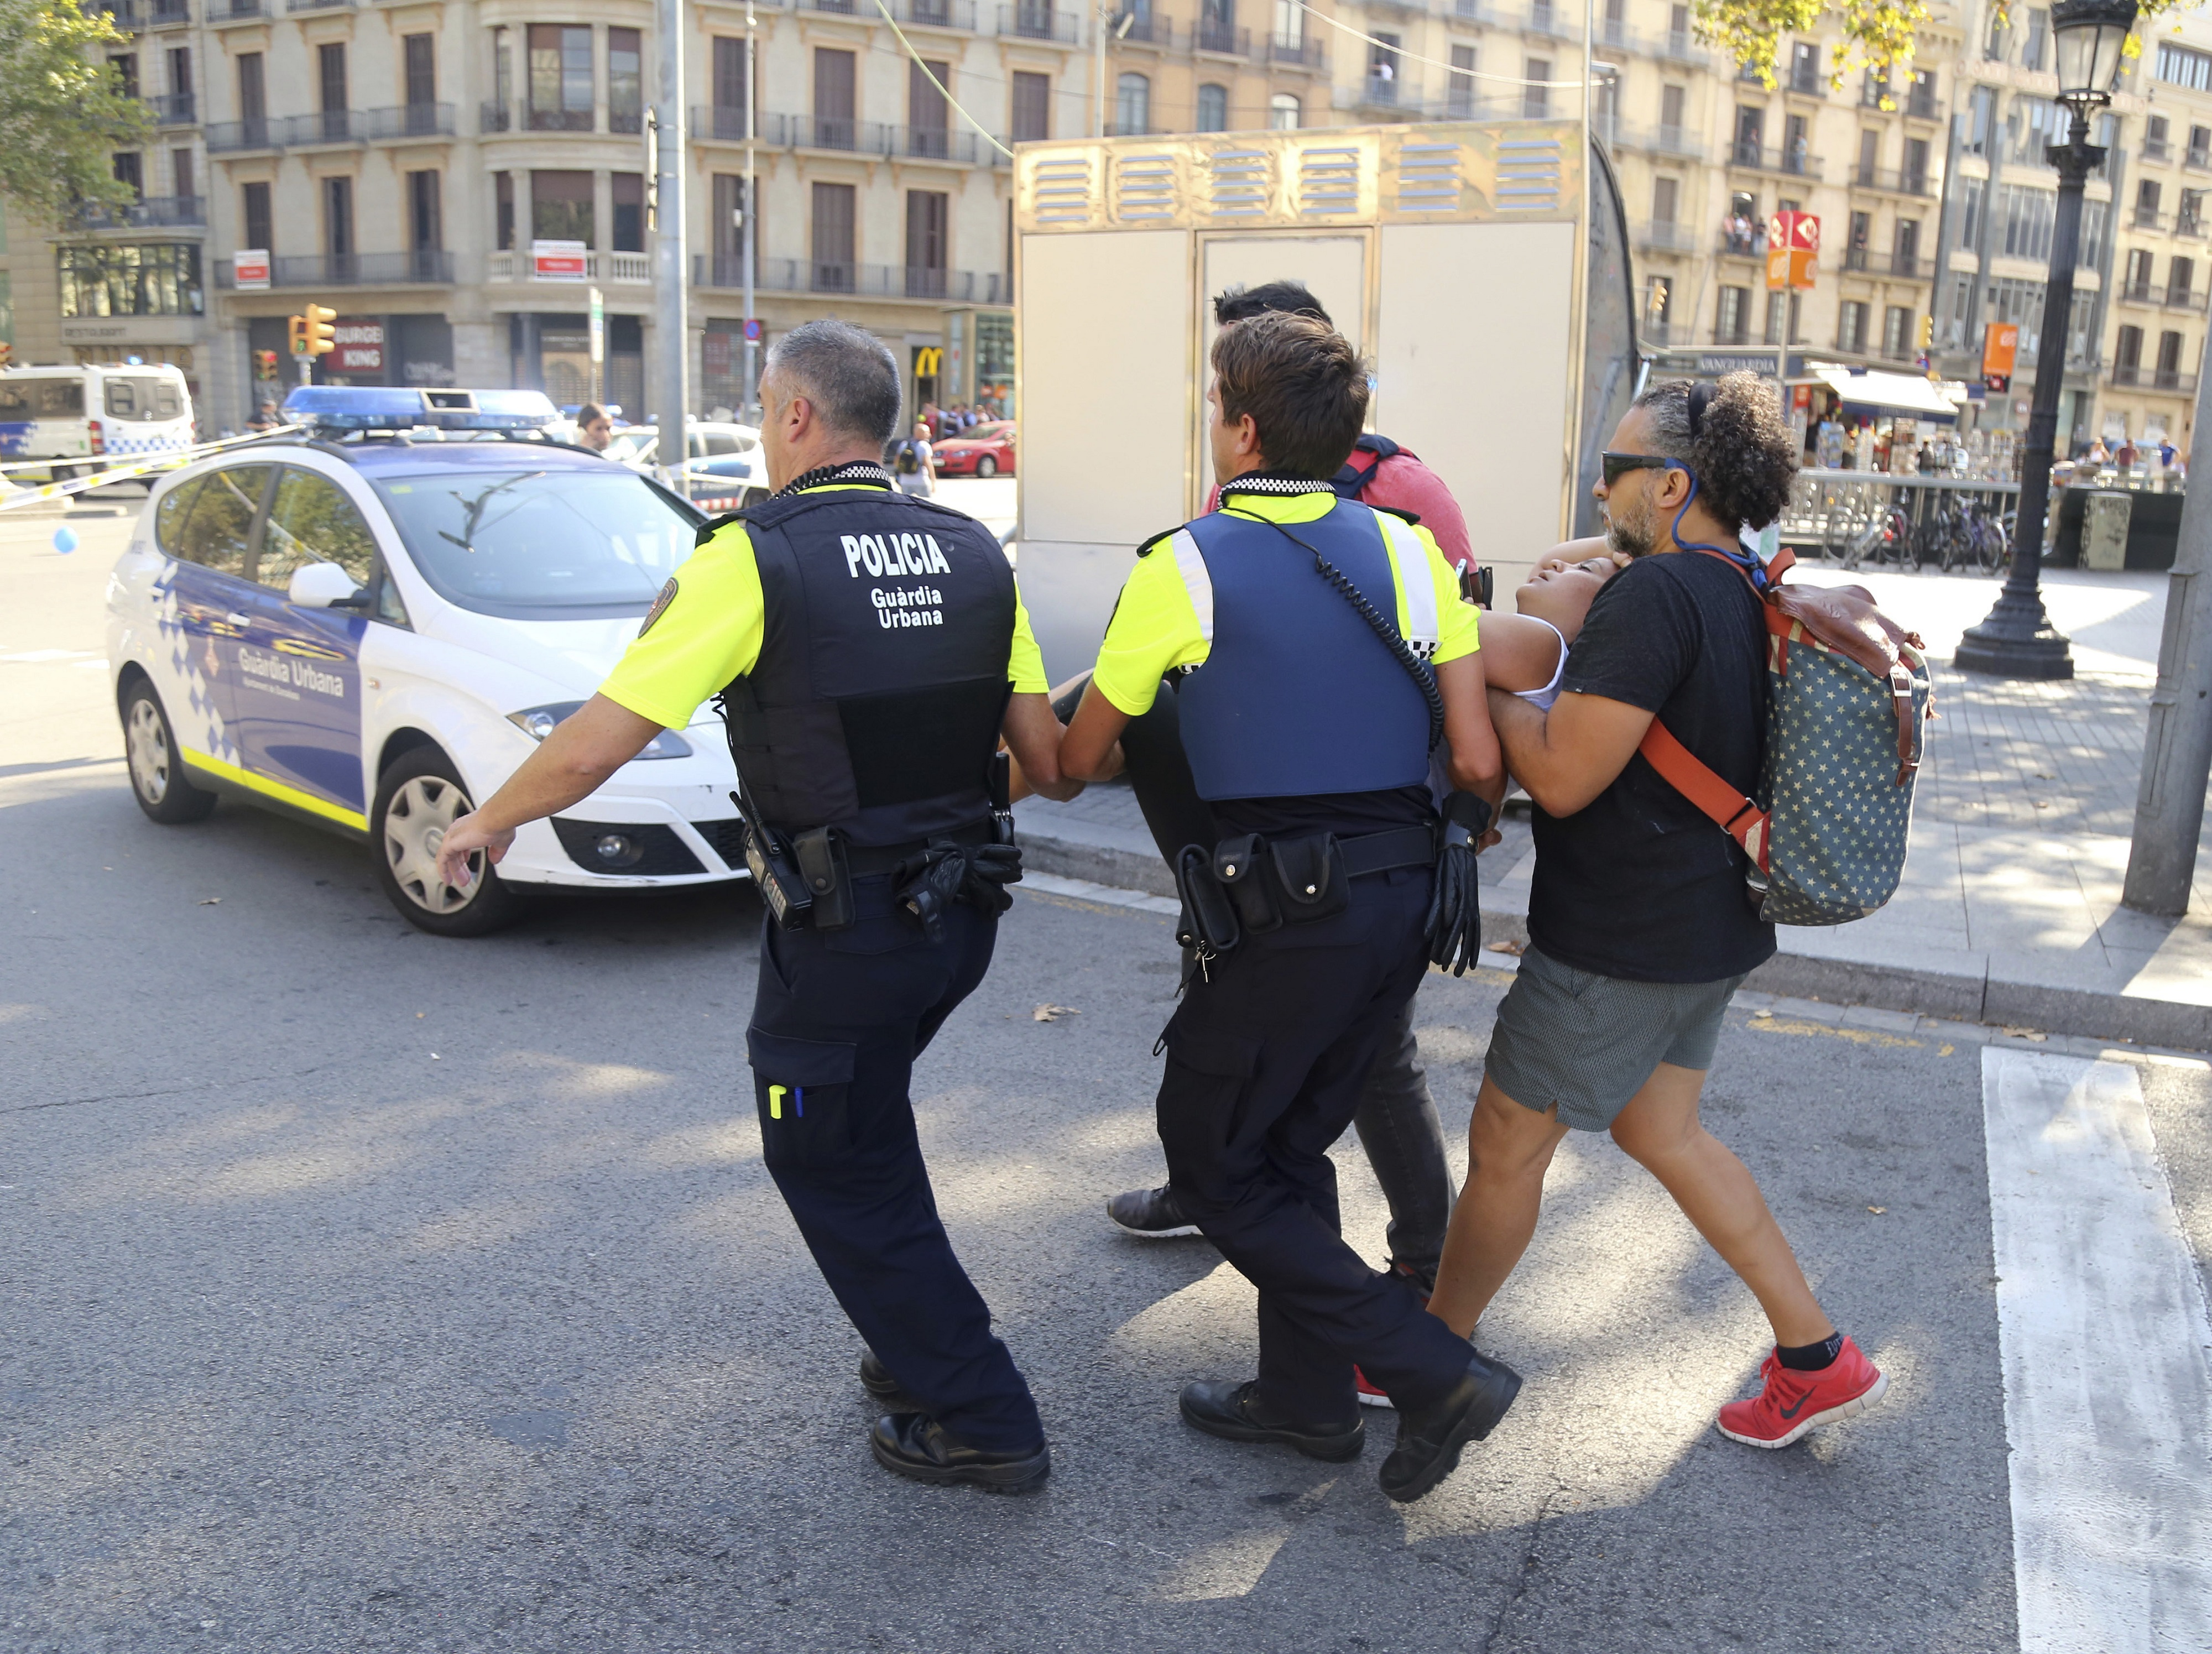 An injured person is carried away in Barcelona